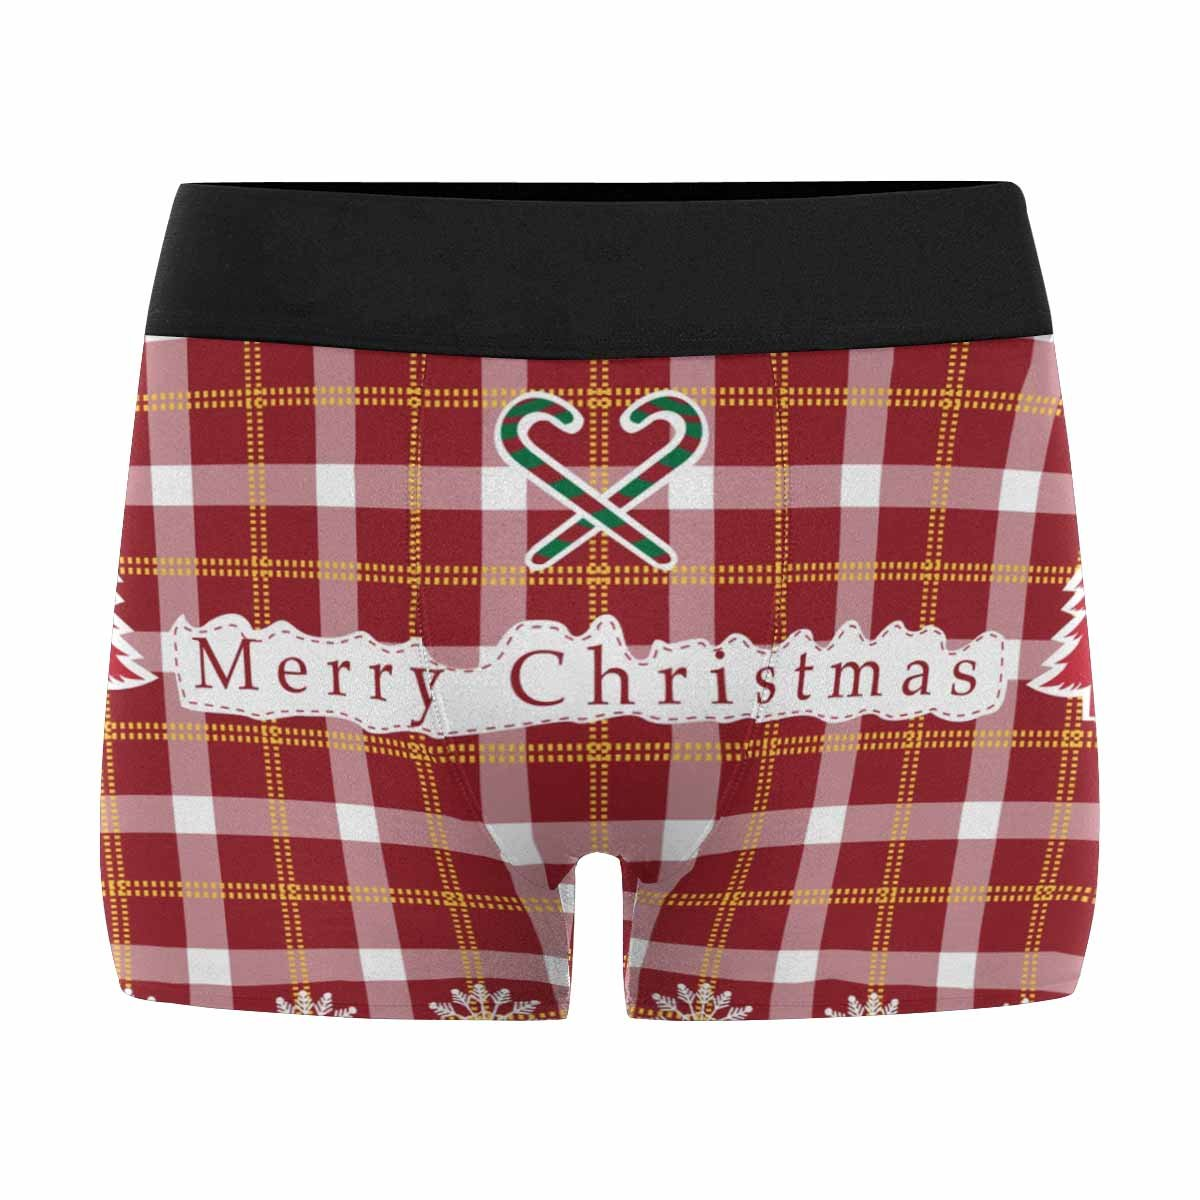 INTERESTPRINT Mens All-Over Print Boxer Briefs Christan Tartan Tartan Pattern XS-3XL